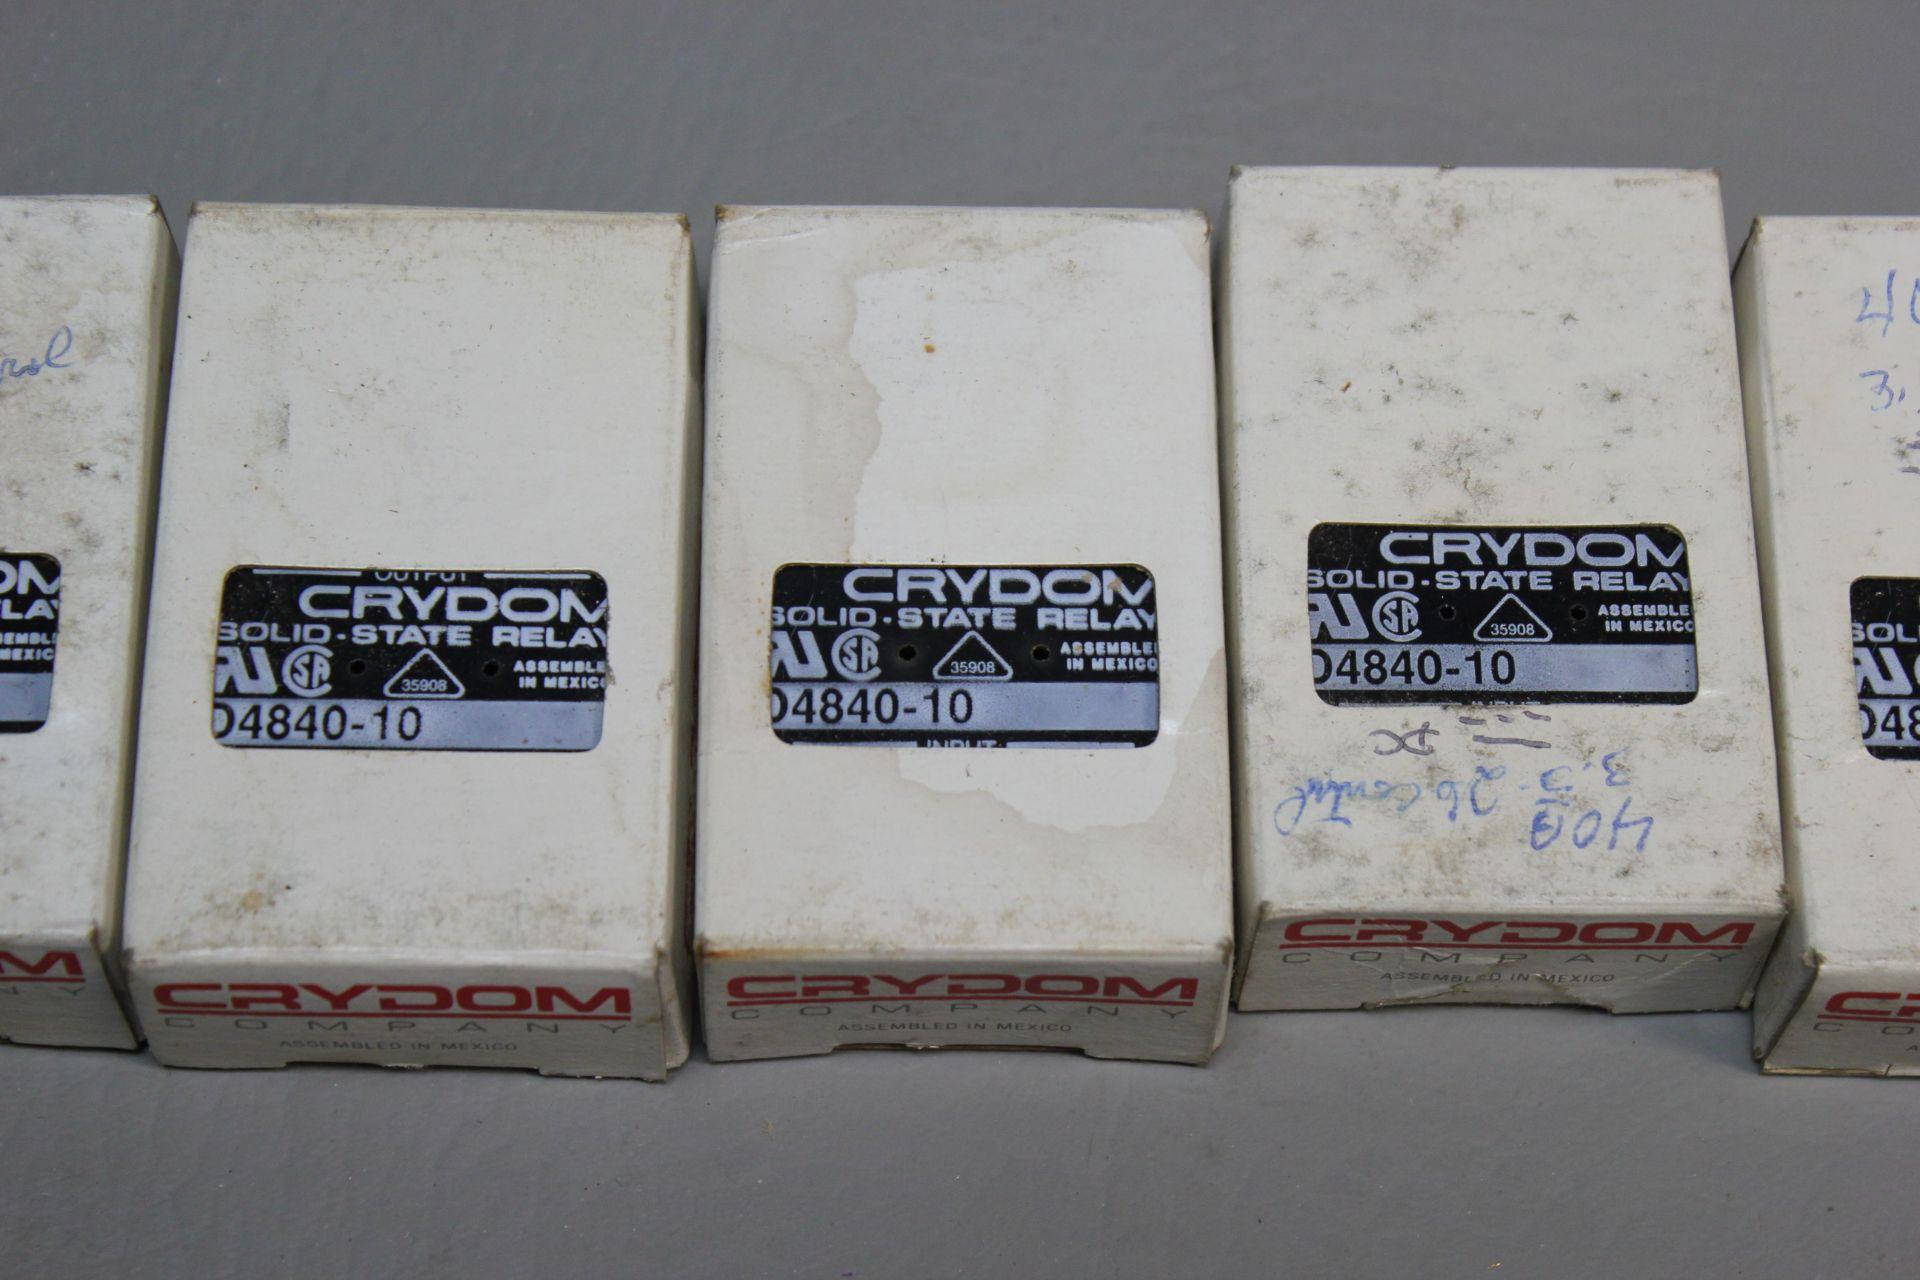 LOT OF NEW CRYDOM SOLID STATE RELAYS - Image 2 of 2